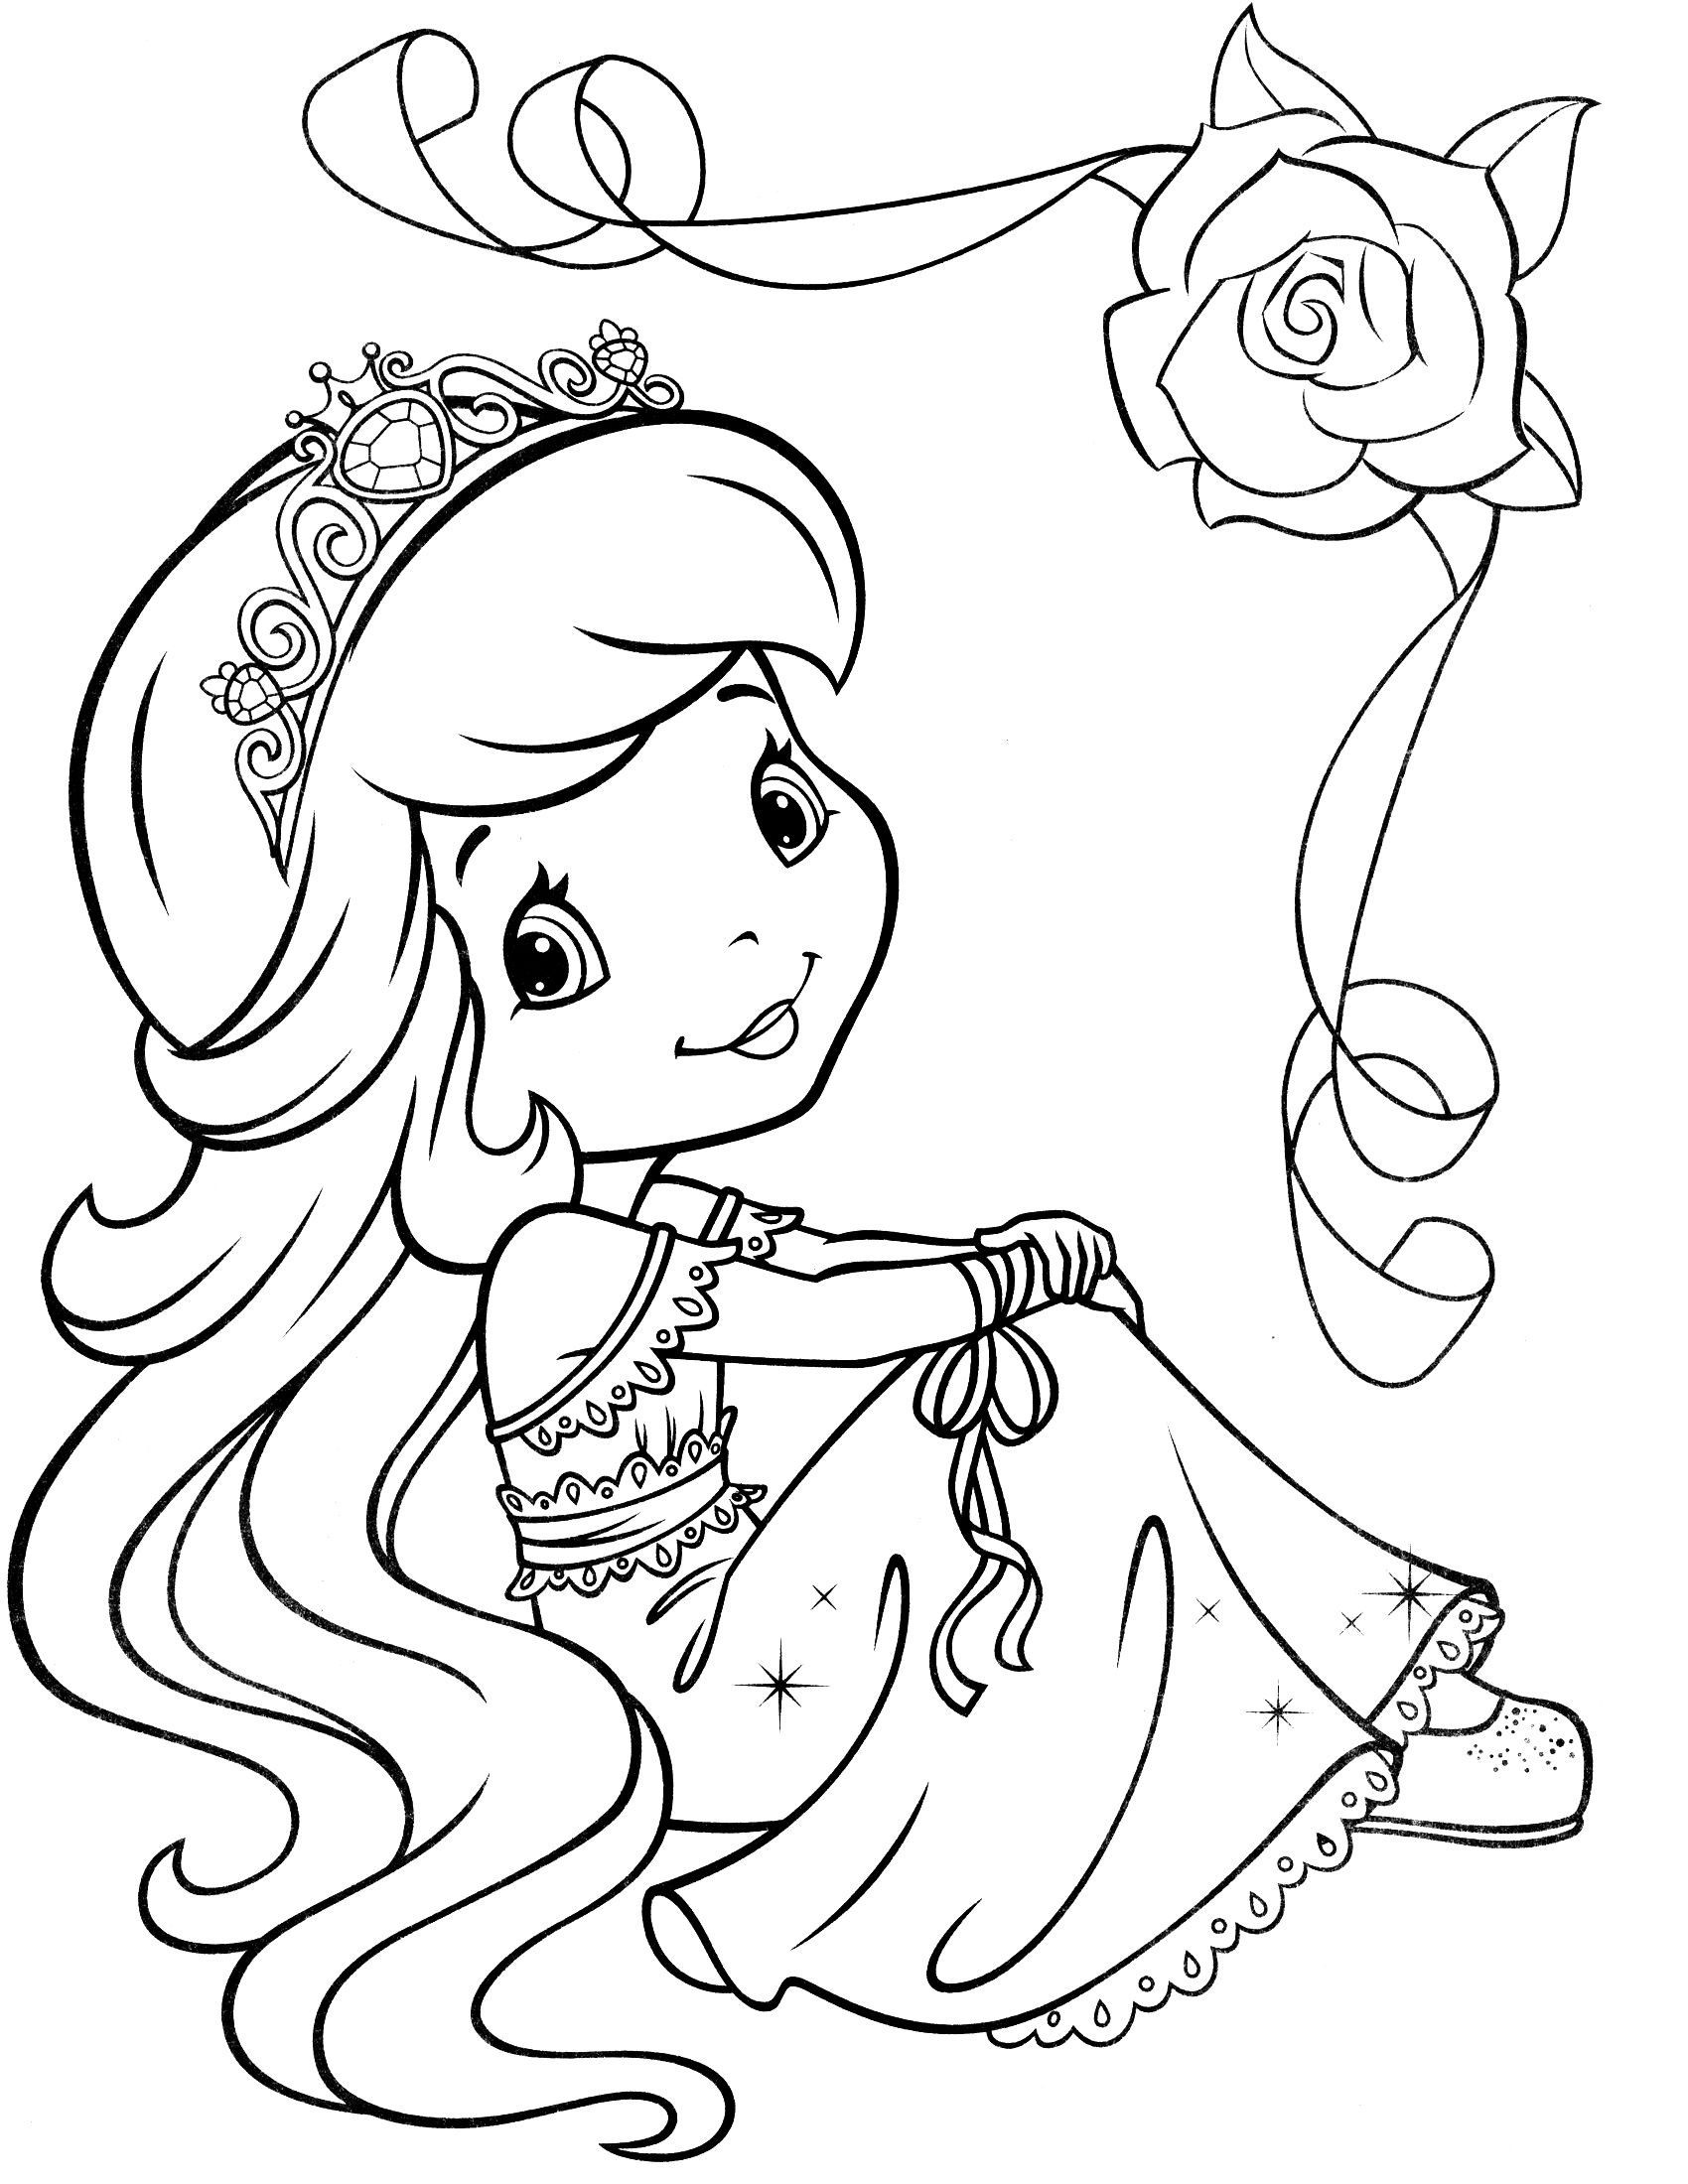 strawberry shortcake princess coloring pages strawberry shortcake 69 coloringcolorcom shortcake coloring strawberry princess pages